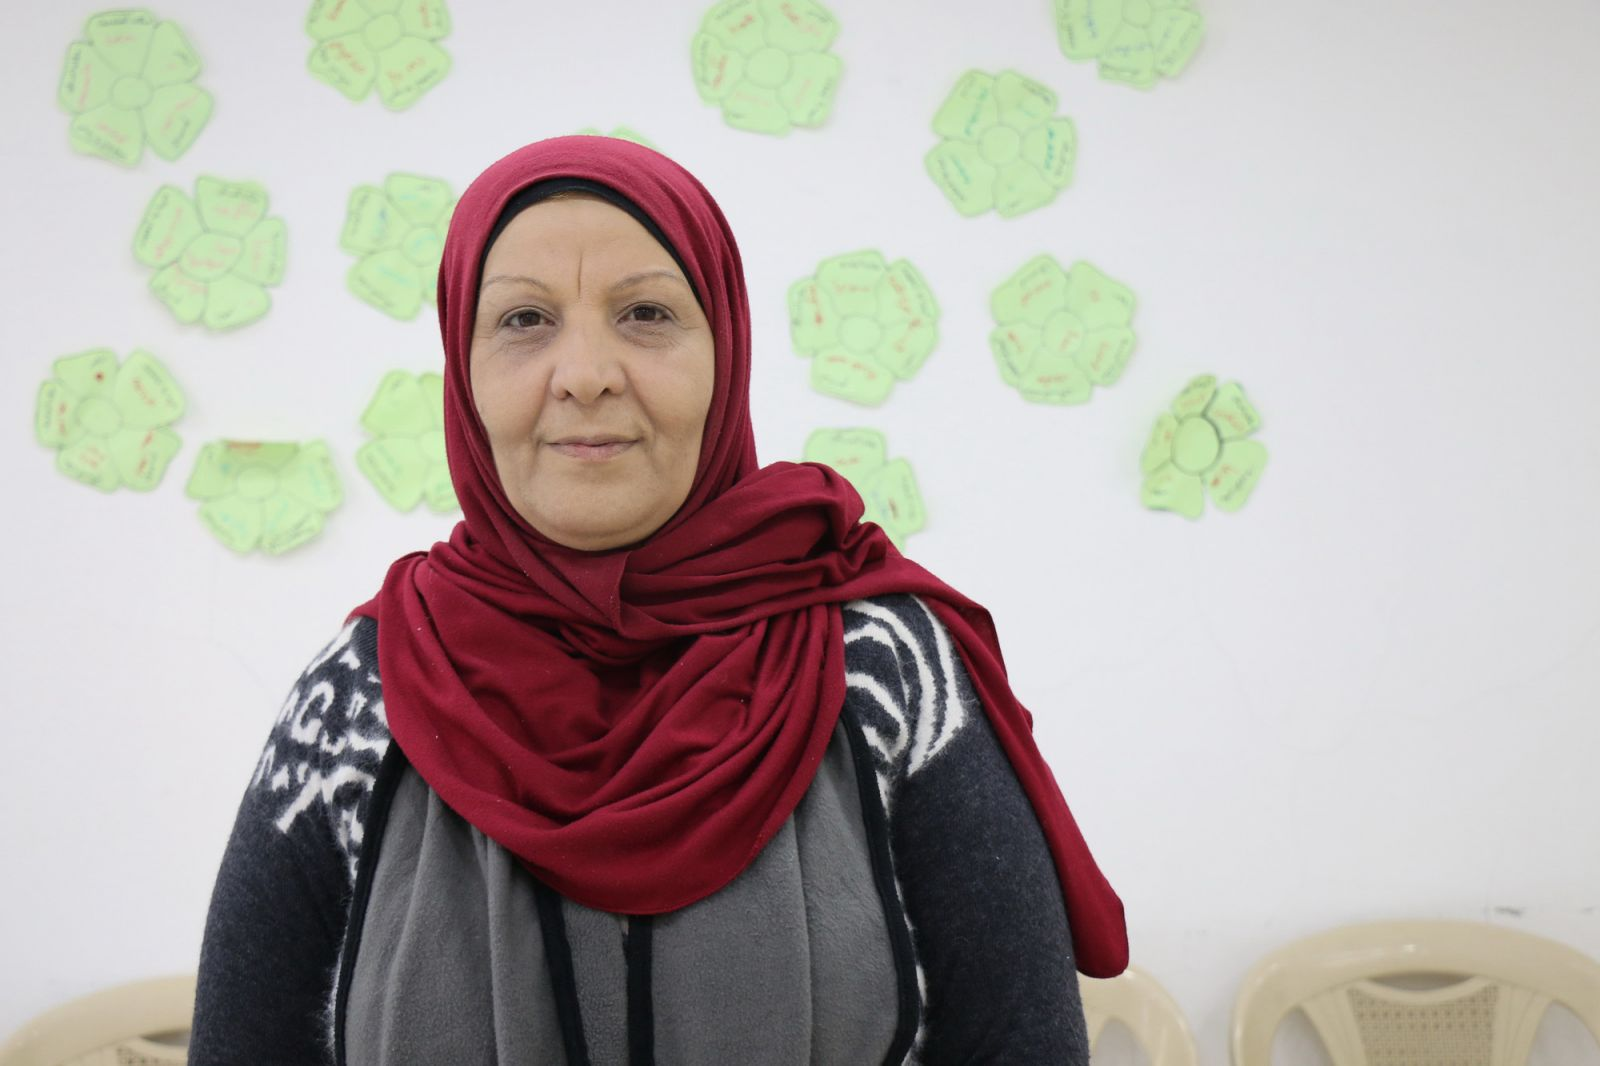 Breaking the mold, Tripoli community action brings women into the